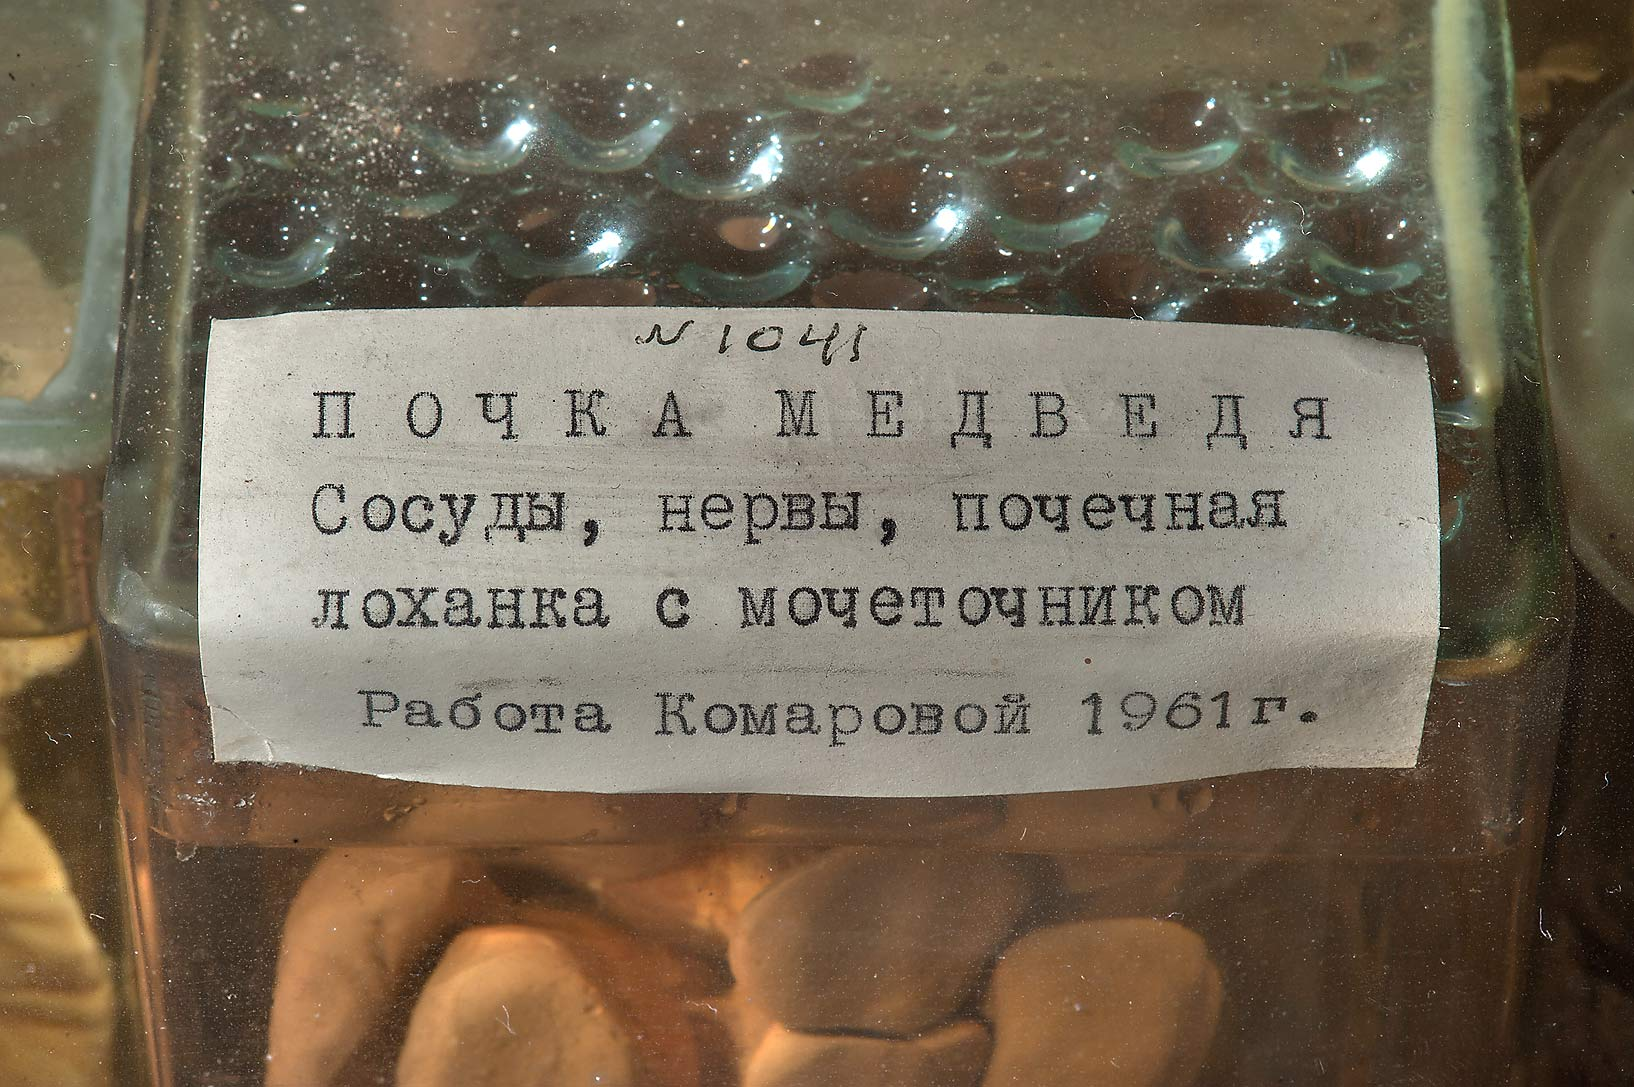 Pickled bear's kidney No. 1041 in Zoological Museum. St.Petersburg, Russia